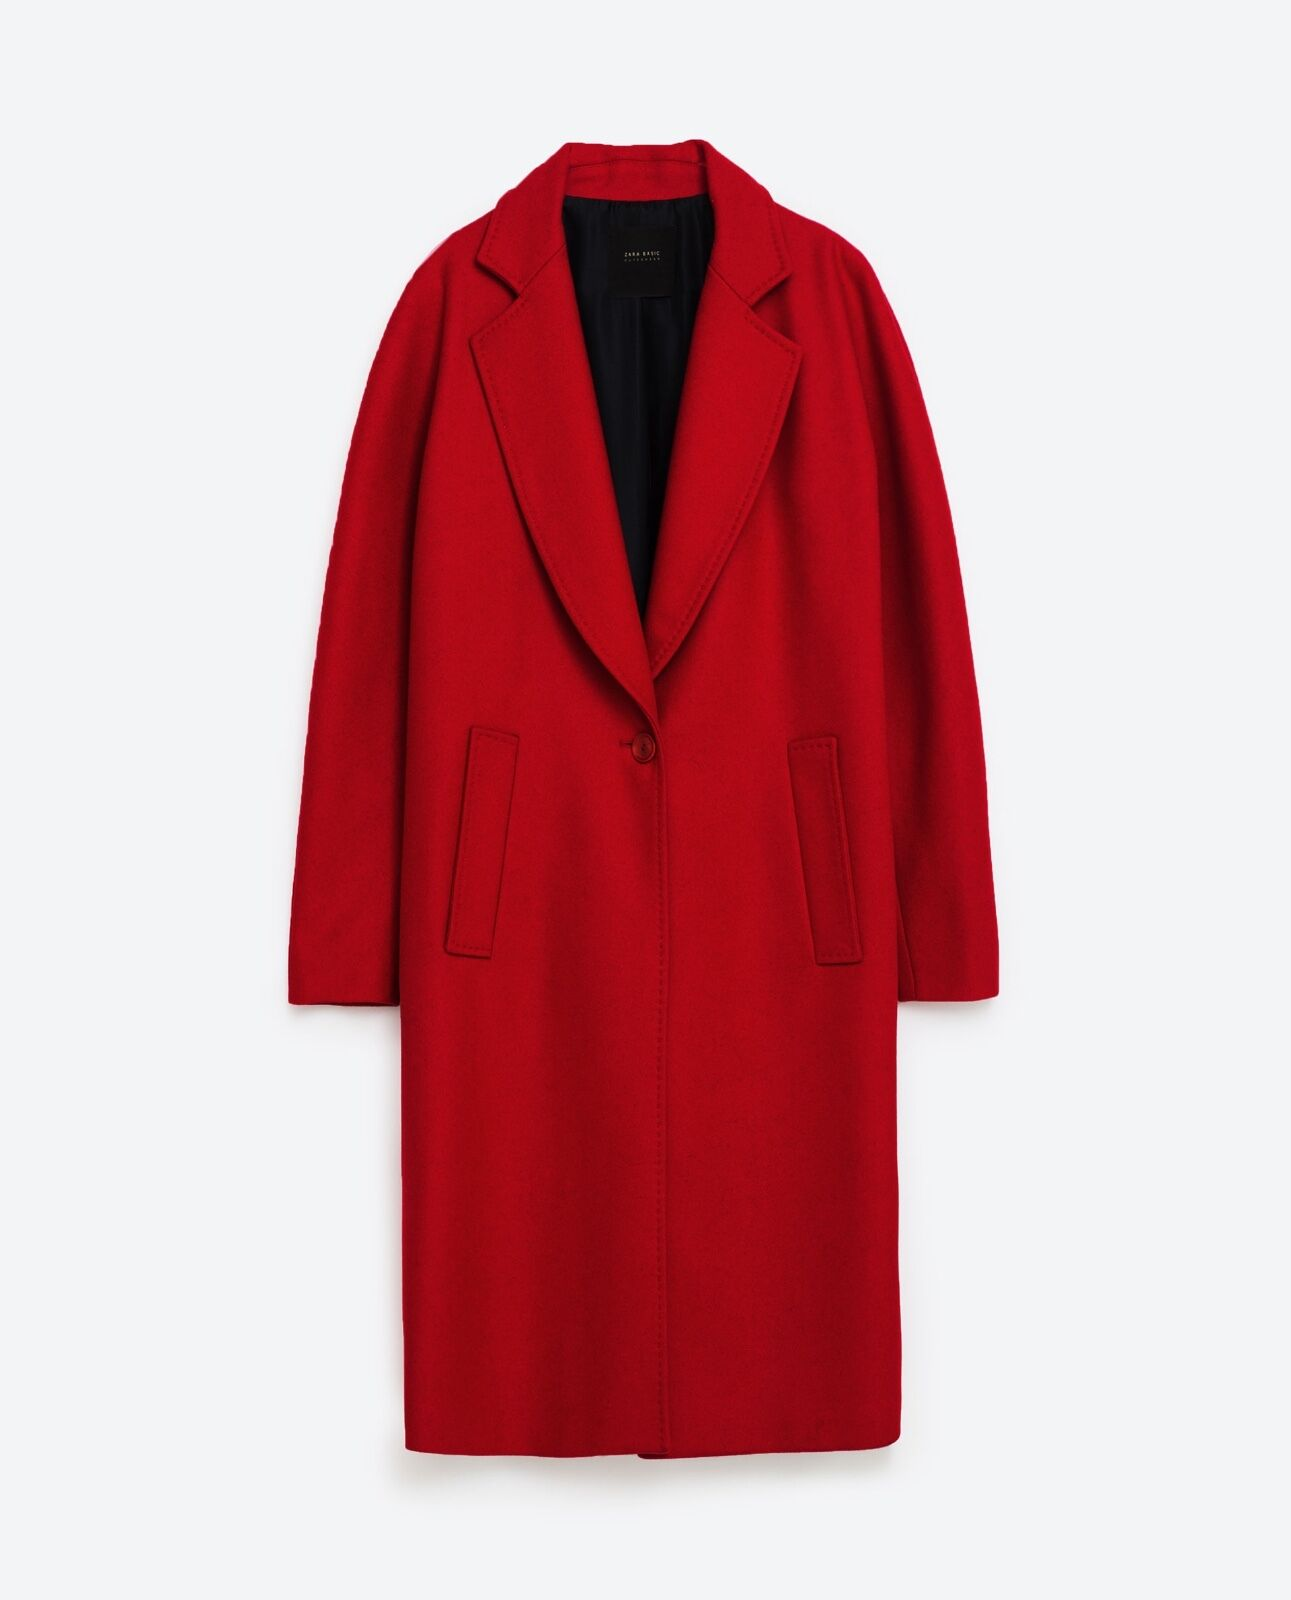 Zara rouge Coat With Pockets Taille S